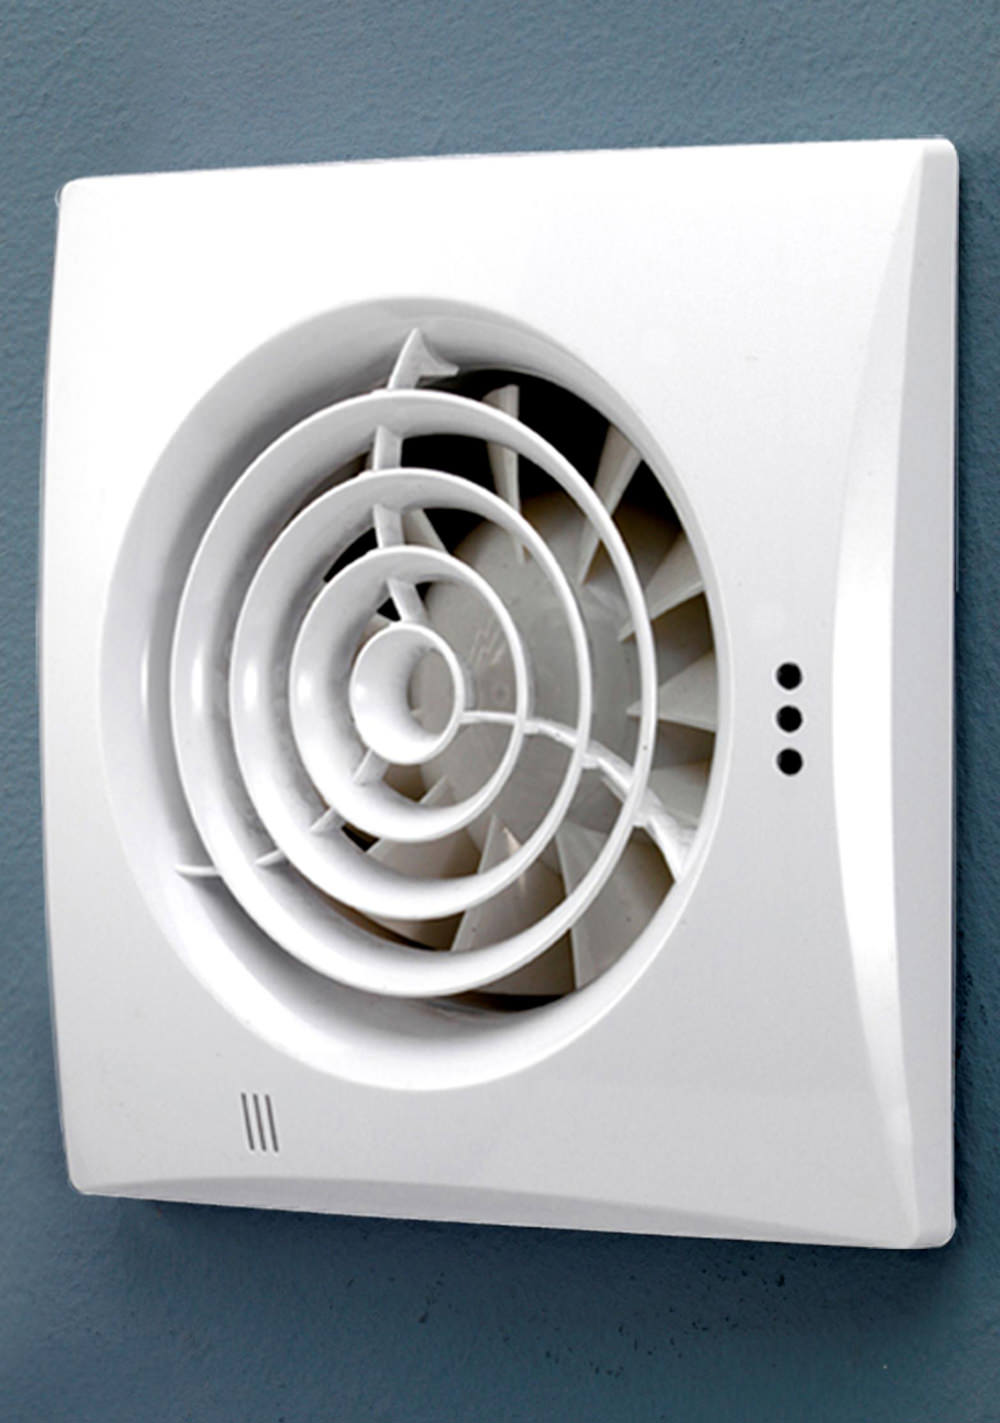 Wall Mounted Extractor Fan : Hib hush wall mounted white fan with timer and humidity